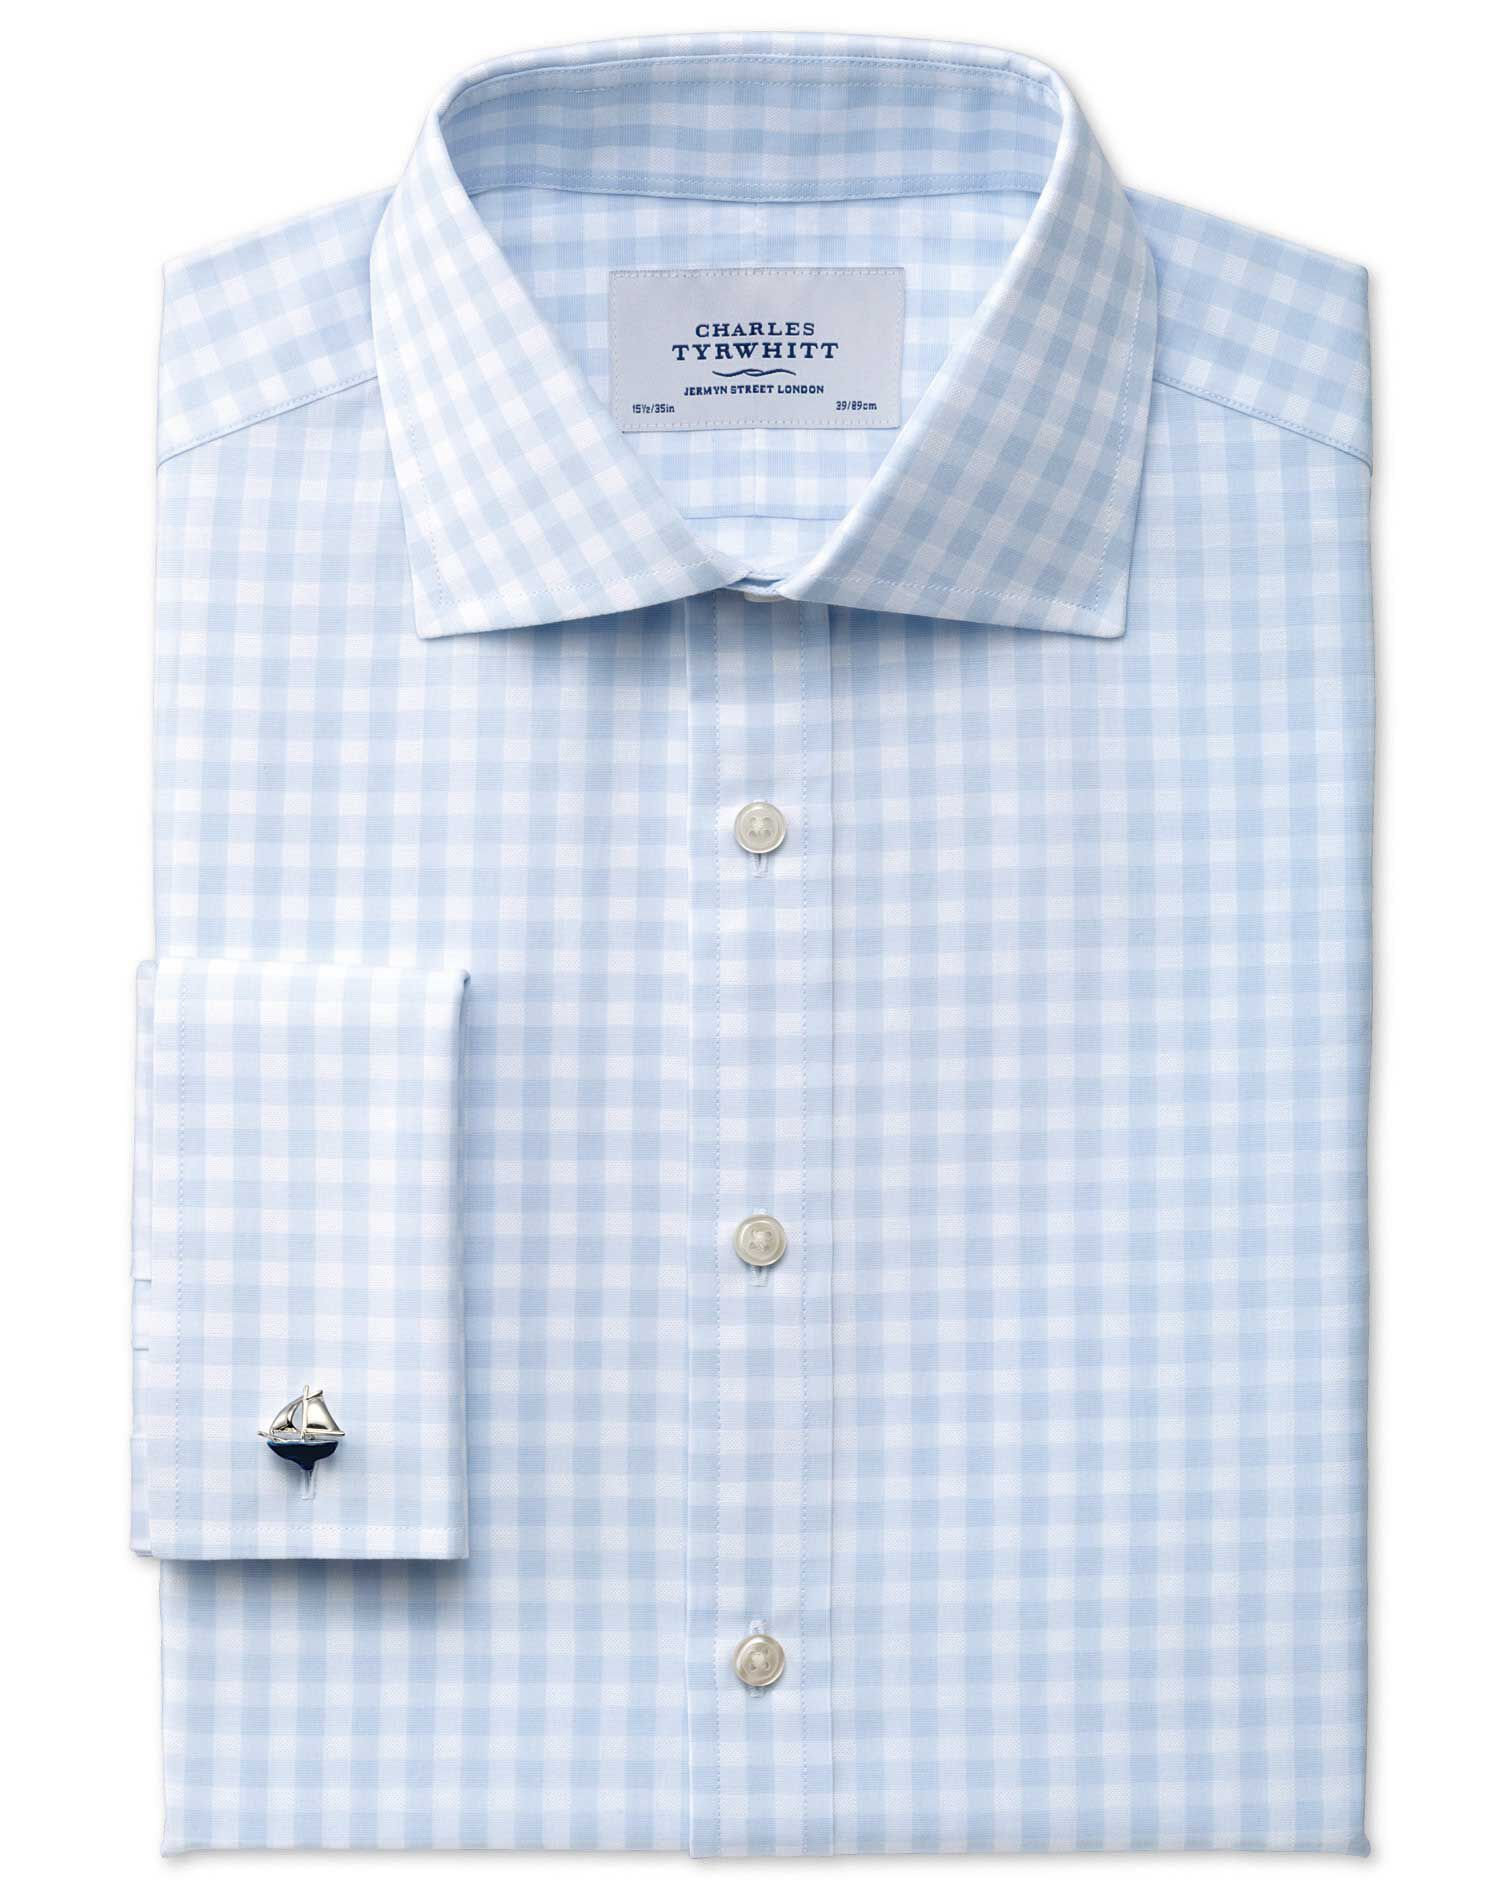 Classic Fit Semi-Cutaway Collar Textured Gingham Sky Blue Cotton Formal Shirt Double Cuff Size 15.5/